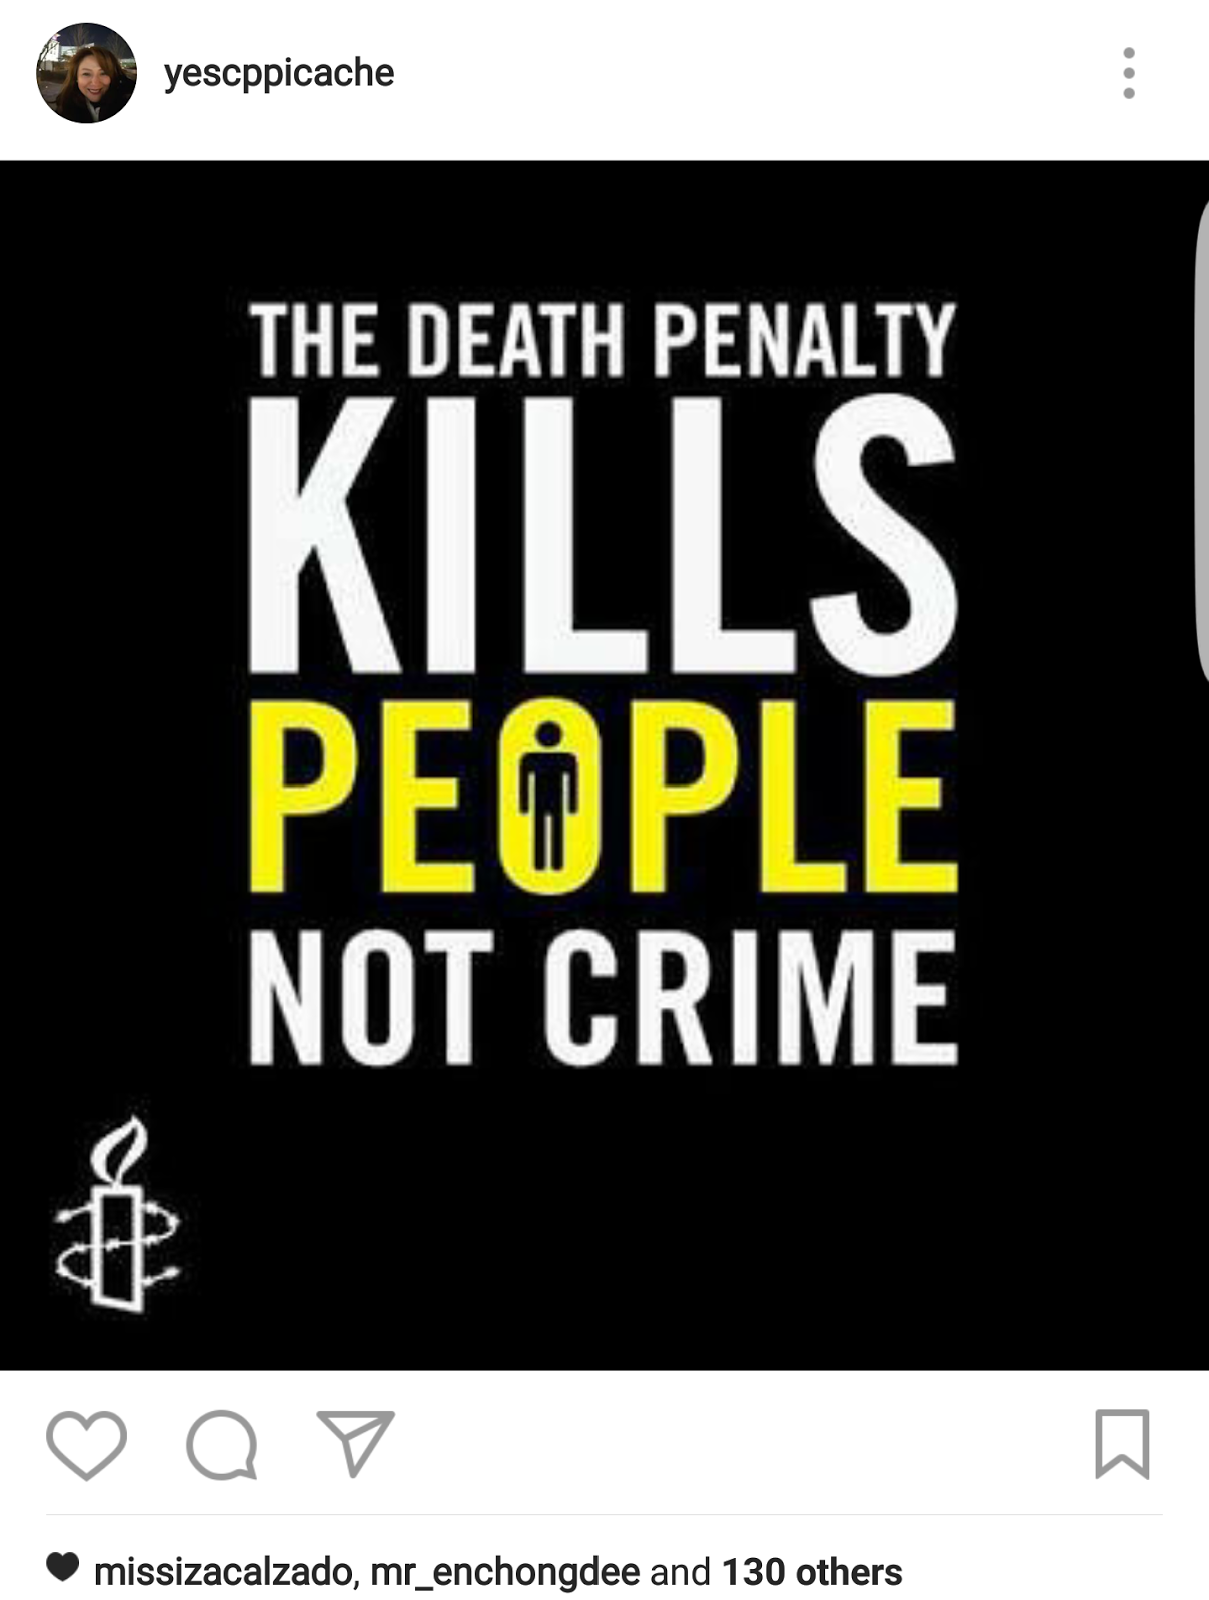 death penalty as a punishment for violating criminal laws such as murder Under international law capital punishment is allowed for the most serious crimes, such as murder, but sentencing someone to death for possession or selling of narcotics represents breaching of.